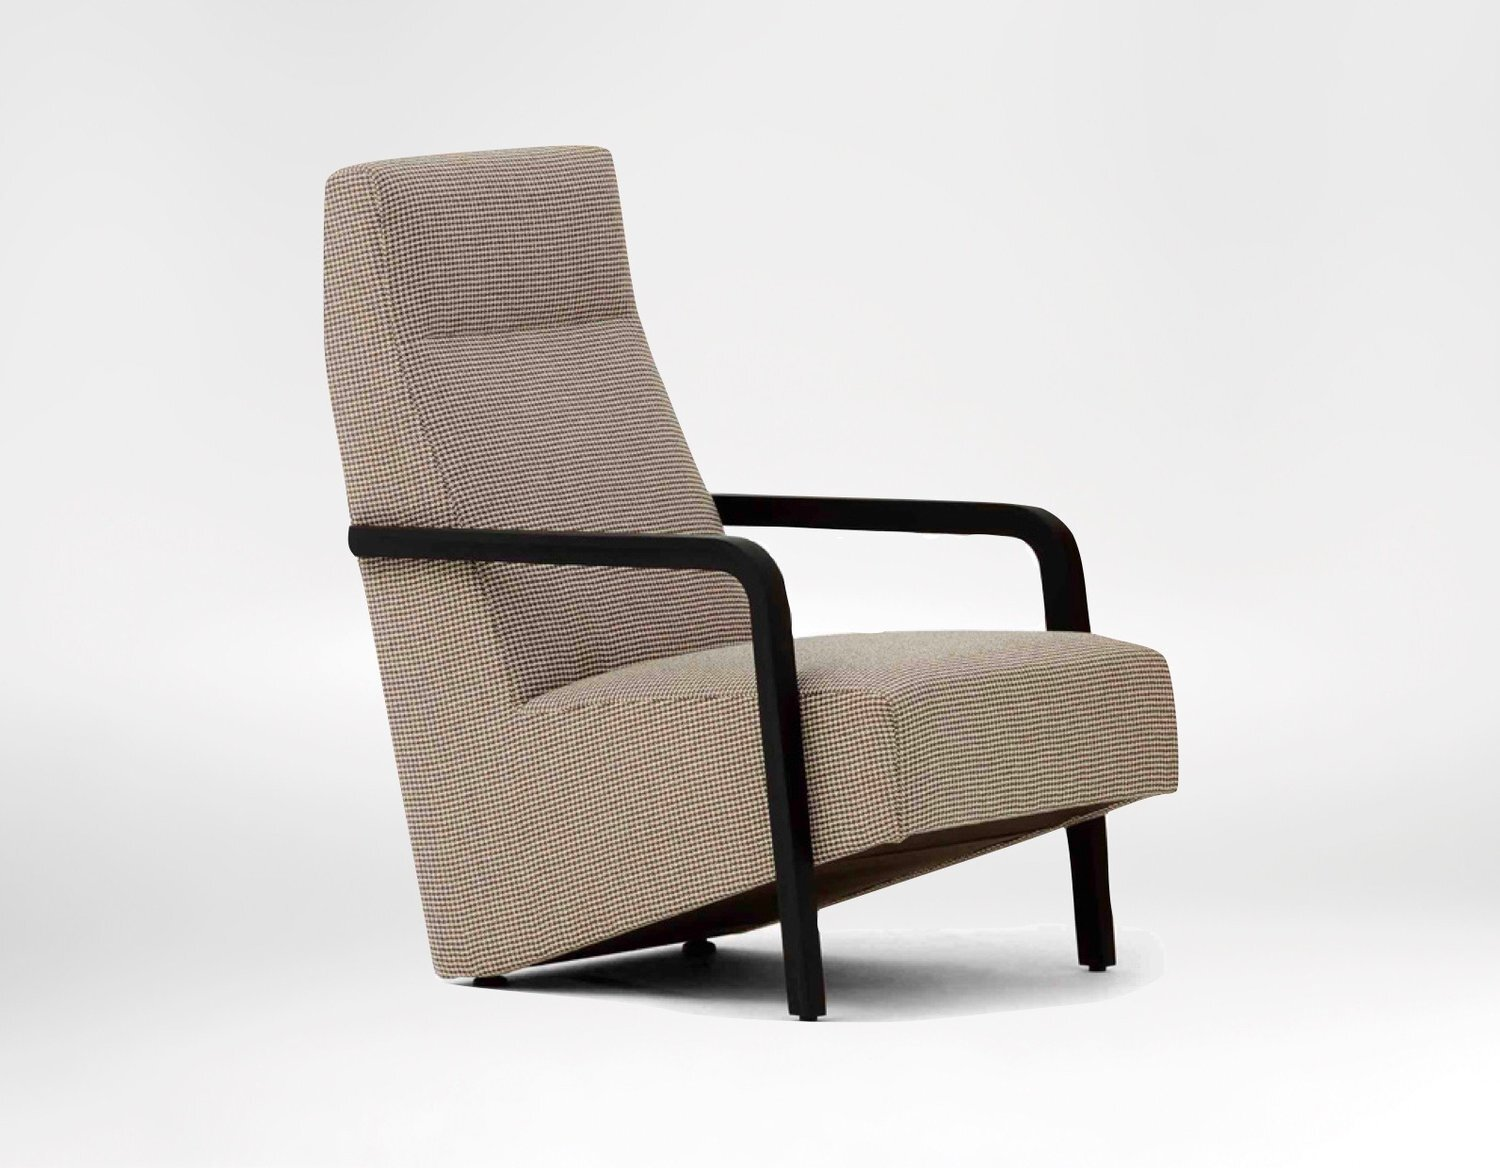 Vast chair - The ultimate in modern styling, The Vast Lounge Chair echoes a cantilevered design.